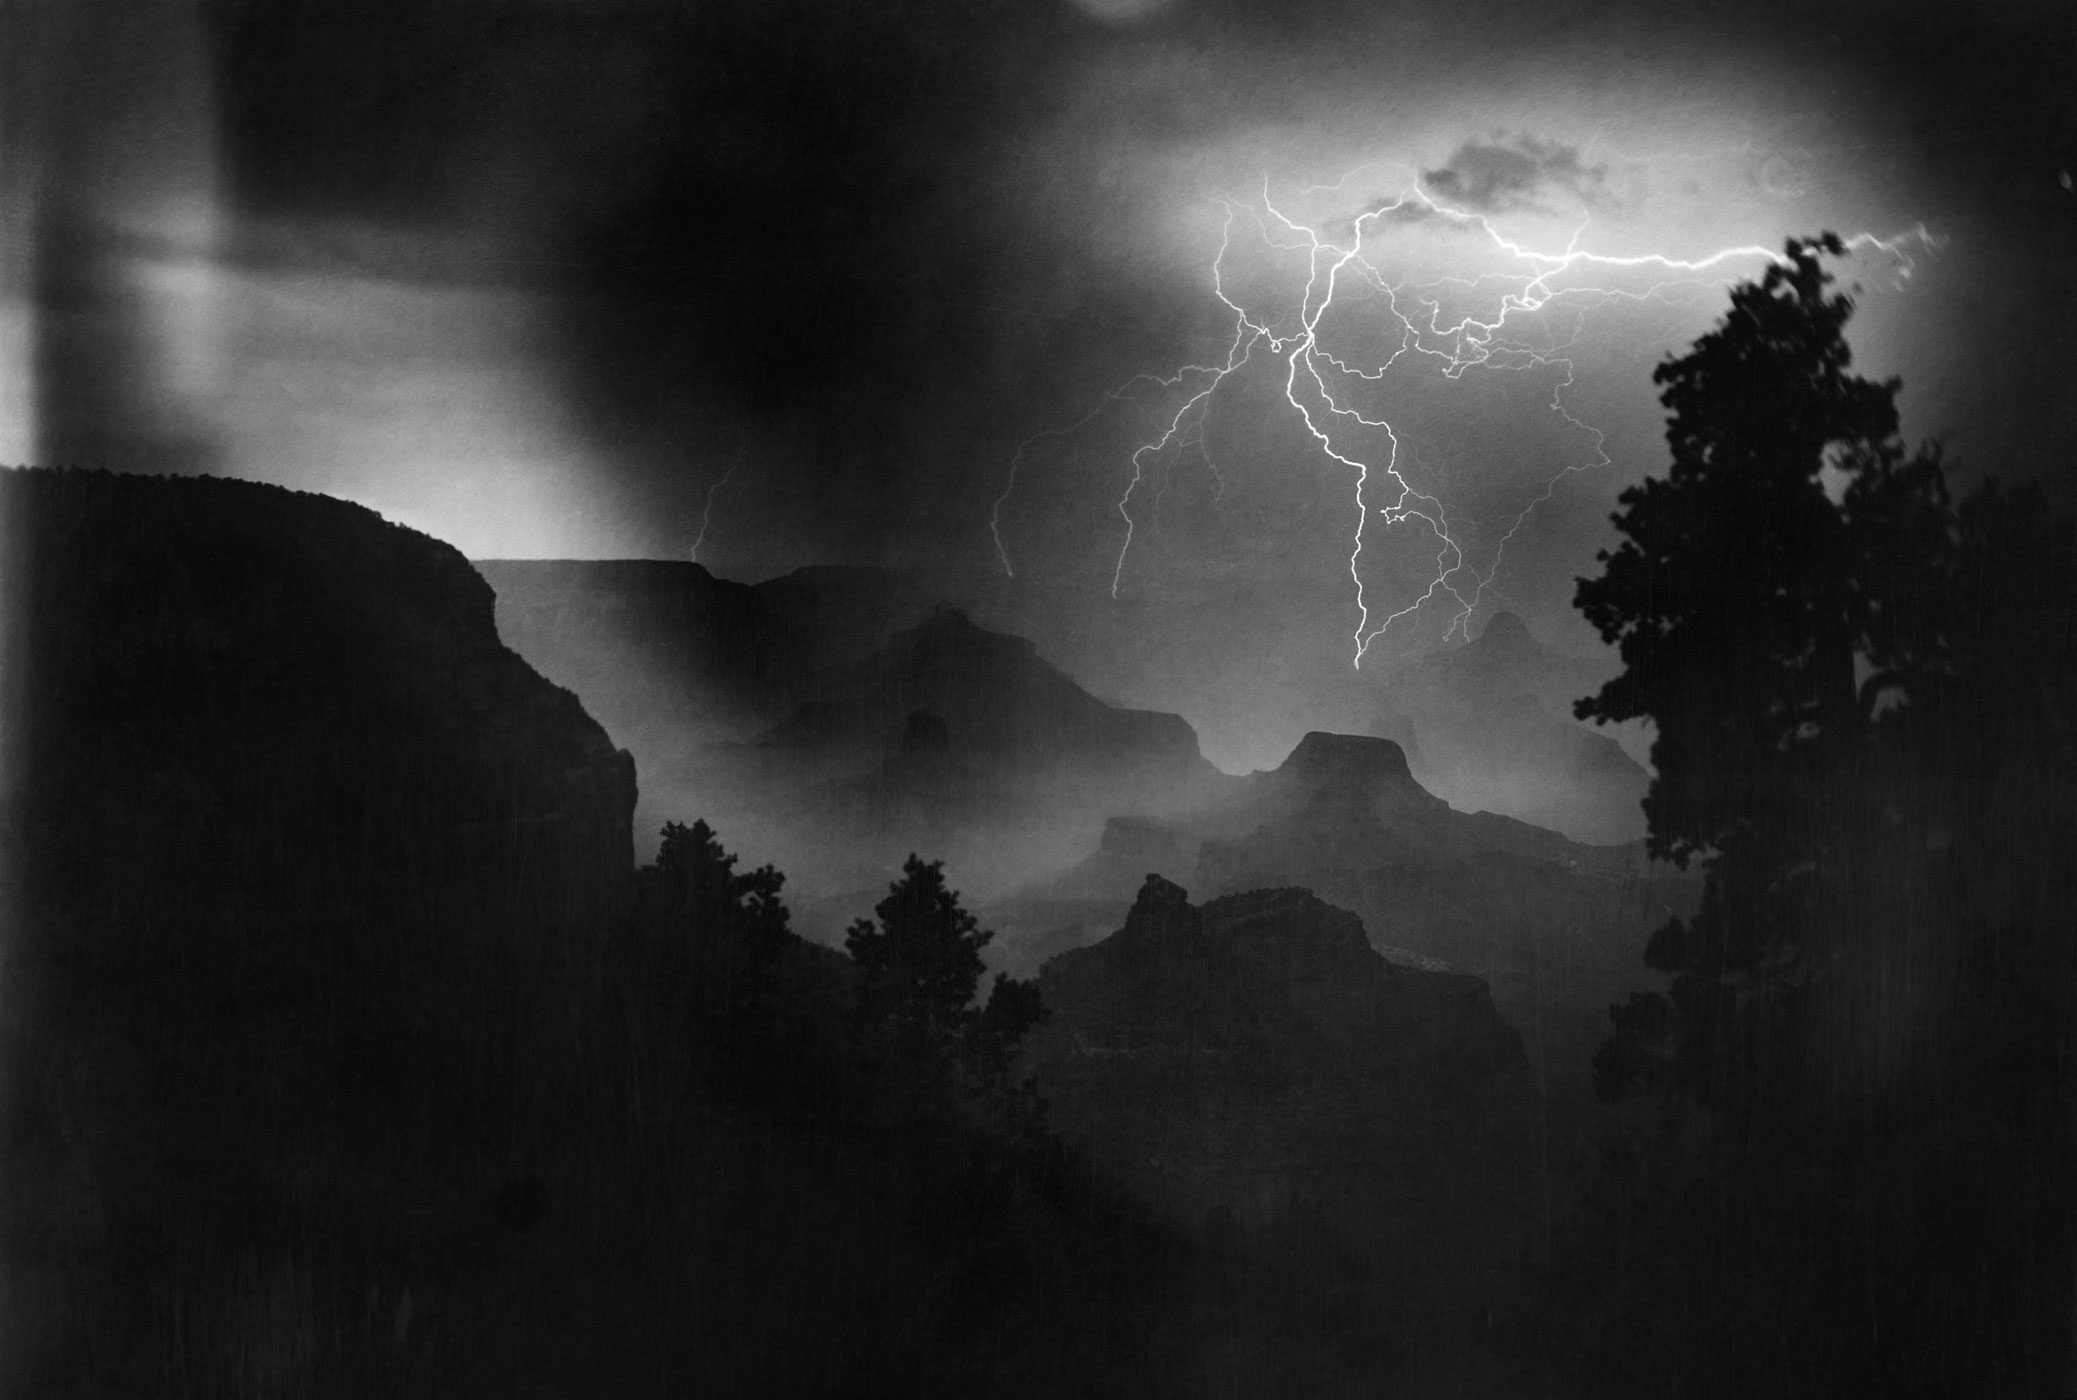 Lightning strikes during an electrical storm at night in the Grand Canyon.